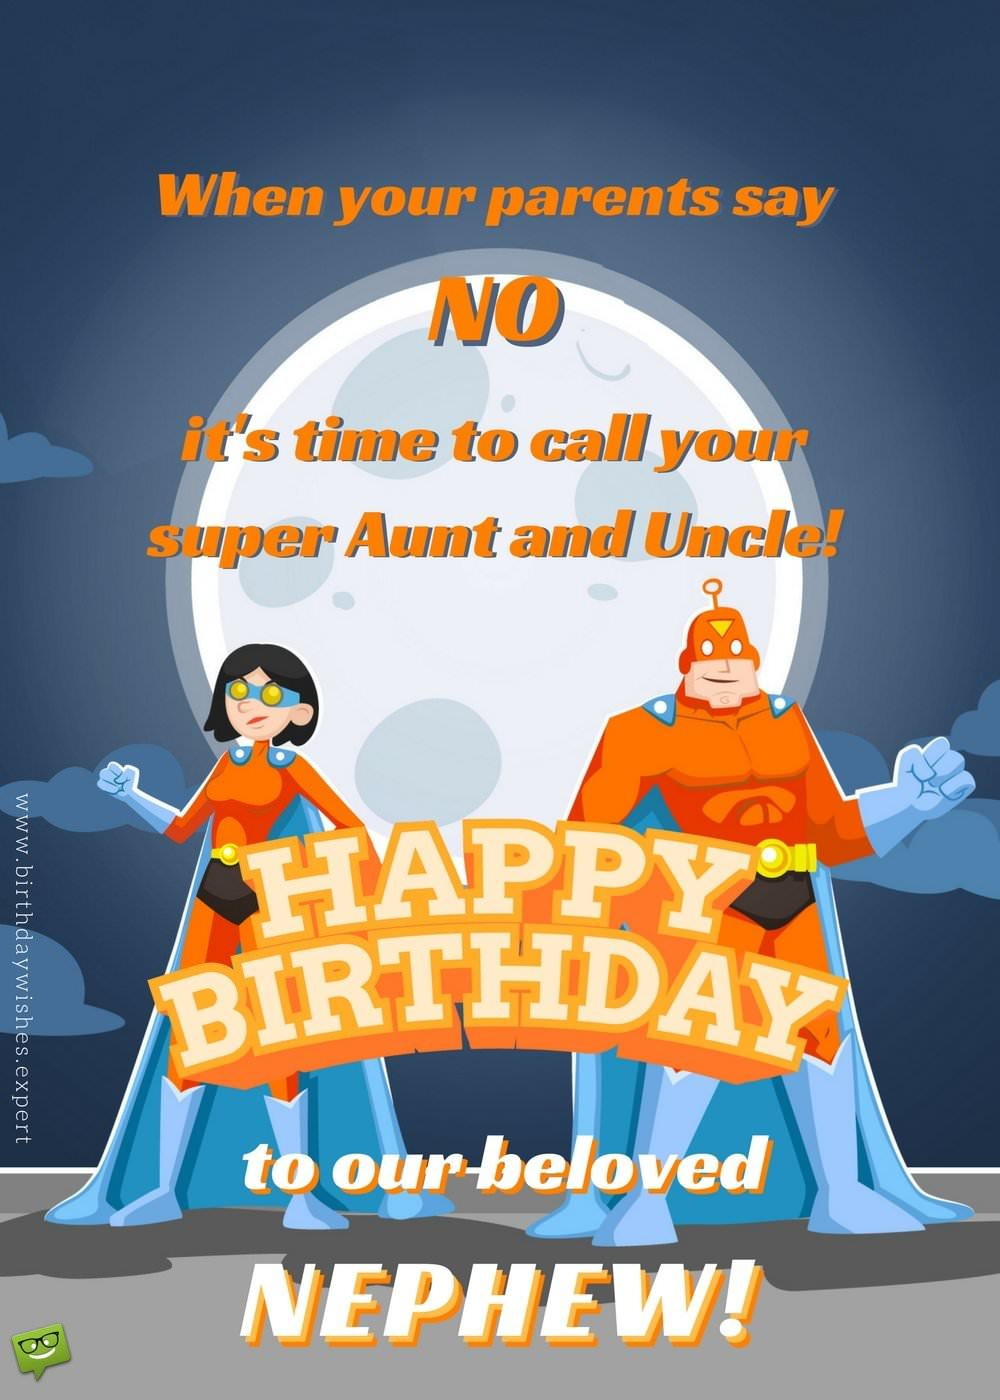 Funny Birthday Wish For Nephew With Super Heroes